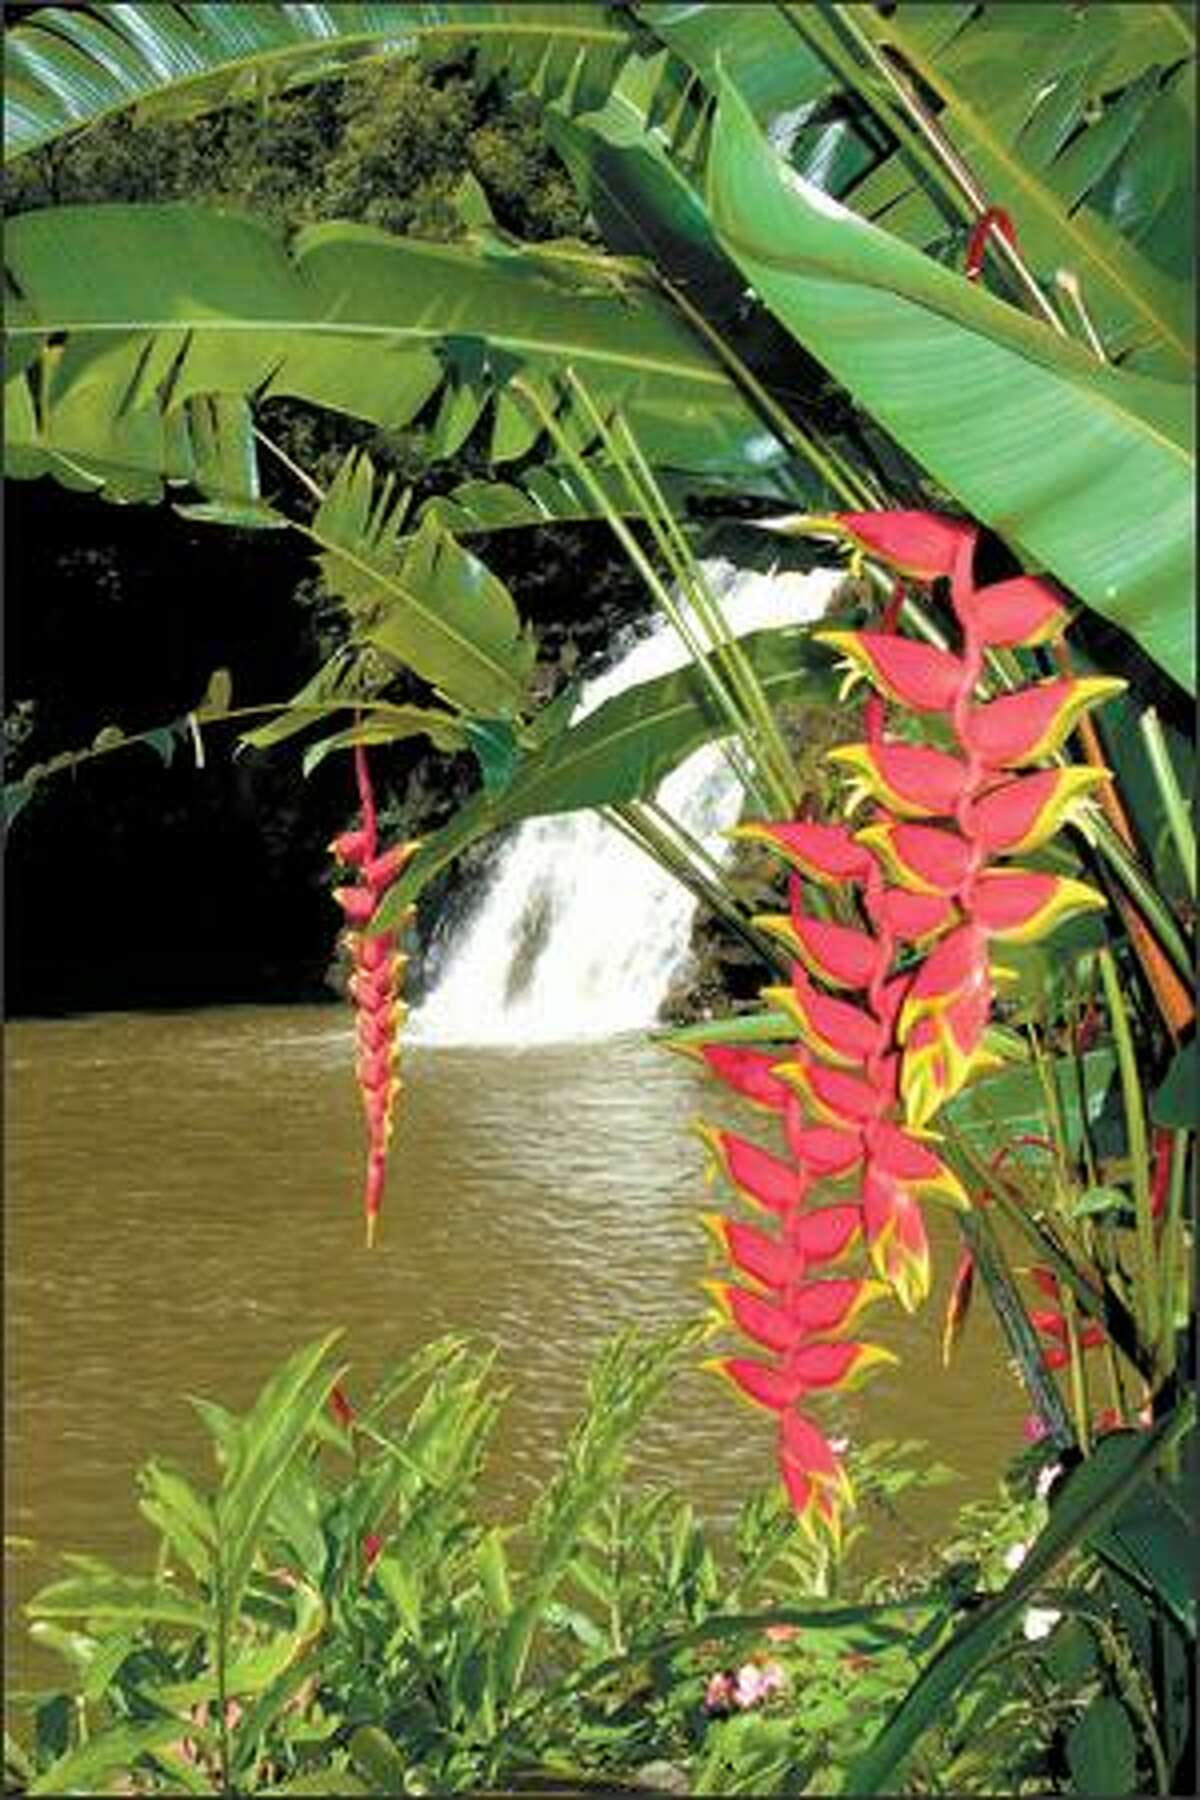 Hanging flowers known as heliconia accent the scene at 55-foot Waimea Falls in Waimea Valley Park on Oahu's North Shore. The park is run by the National Audubon Society.